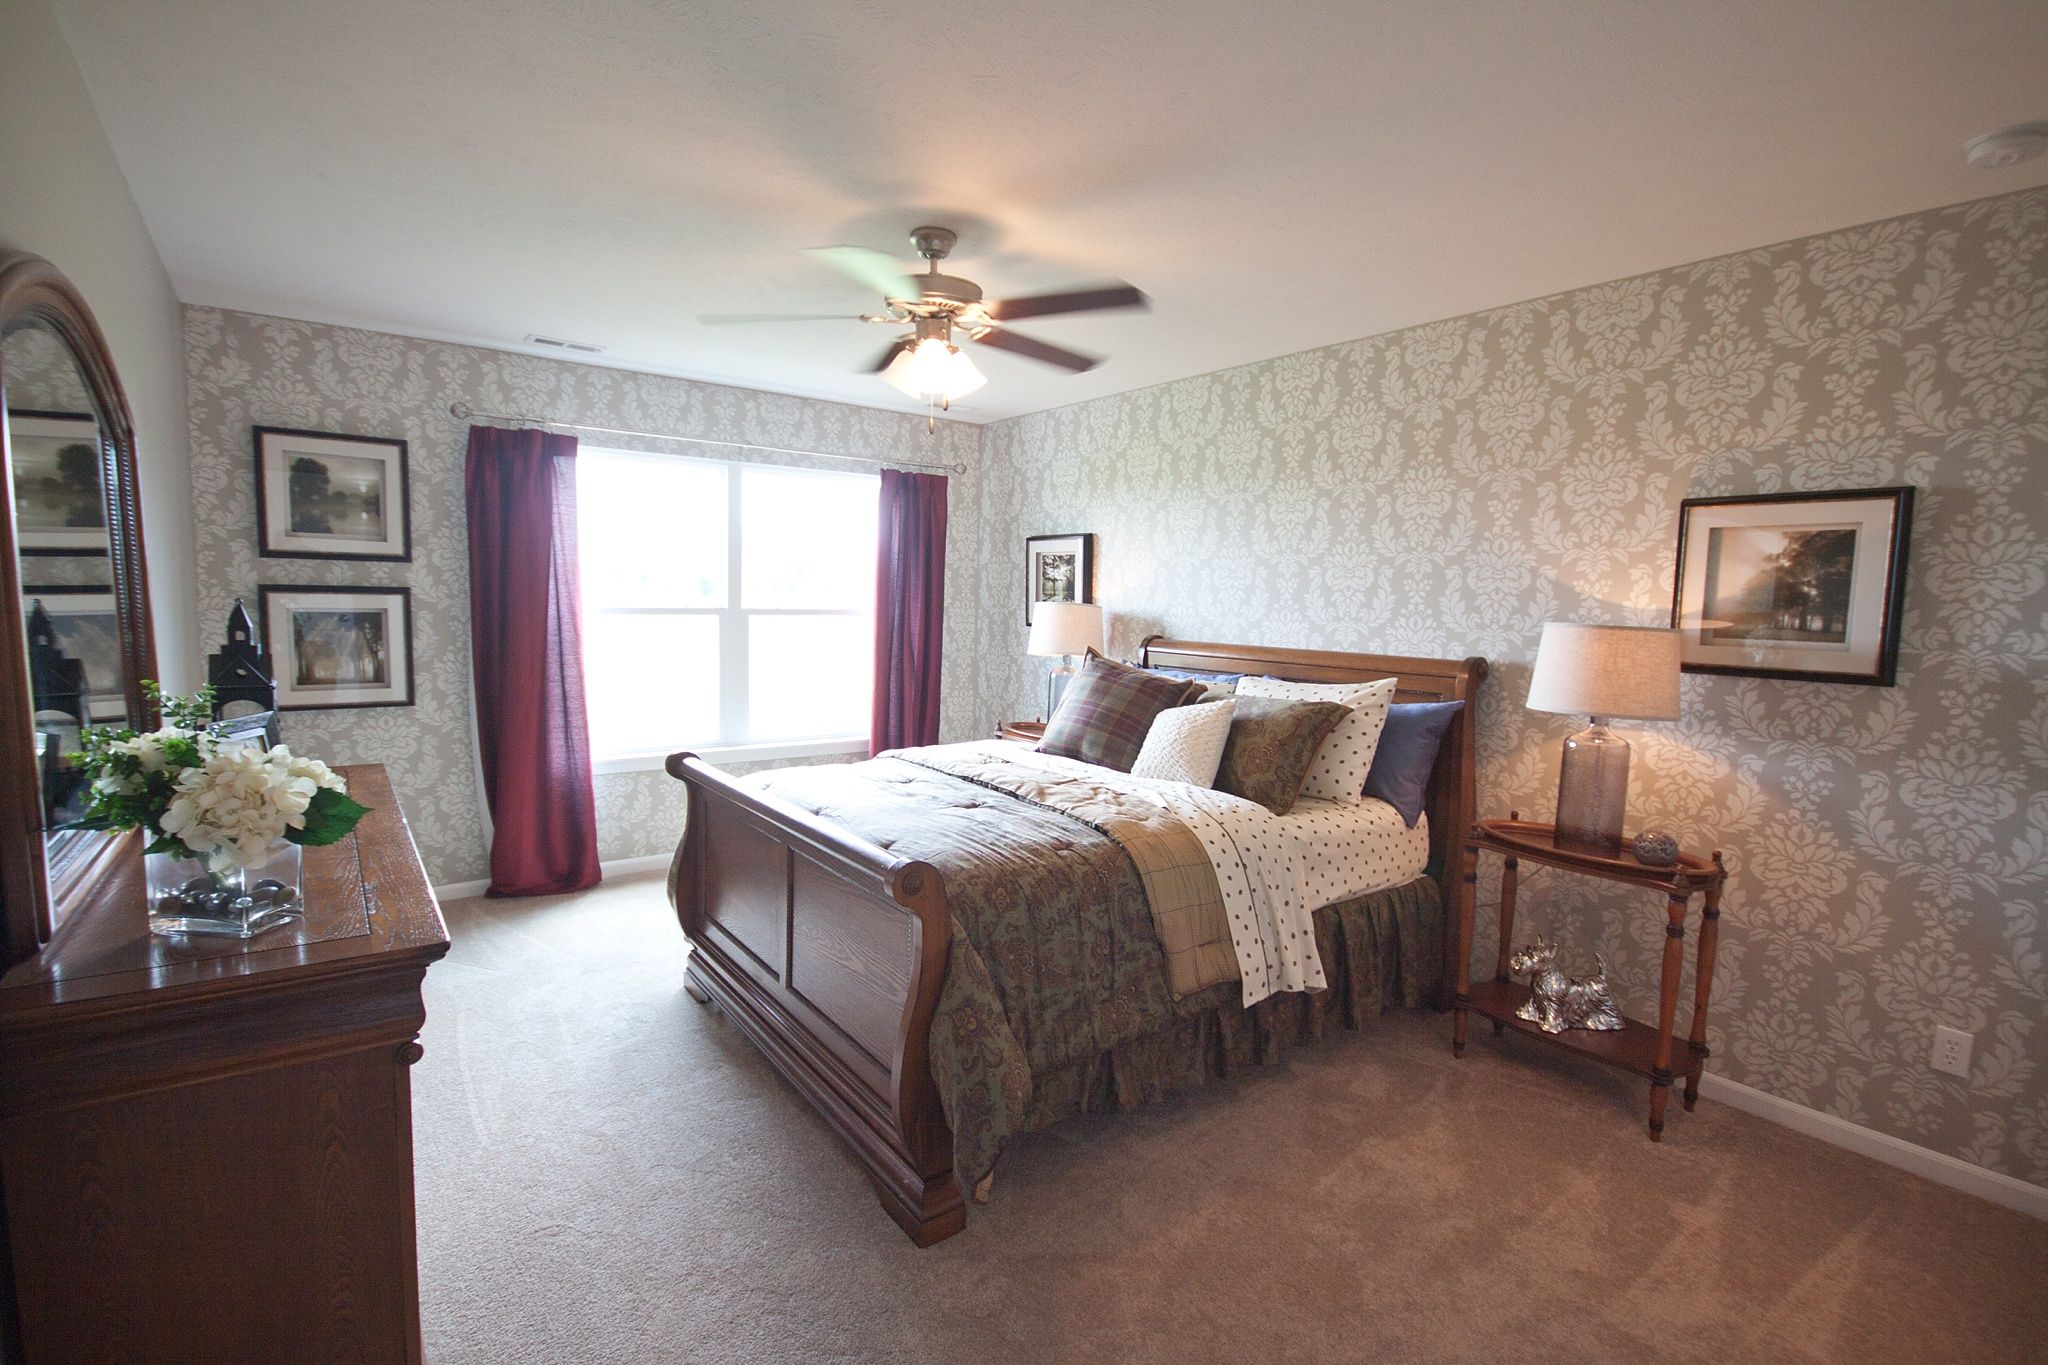 Bedroom featured in the Cordoba By Olthof Homes in Gary, IN